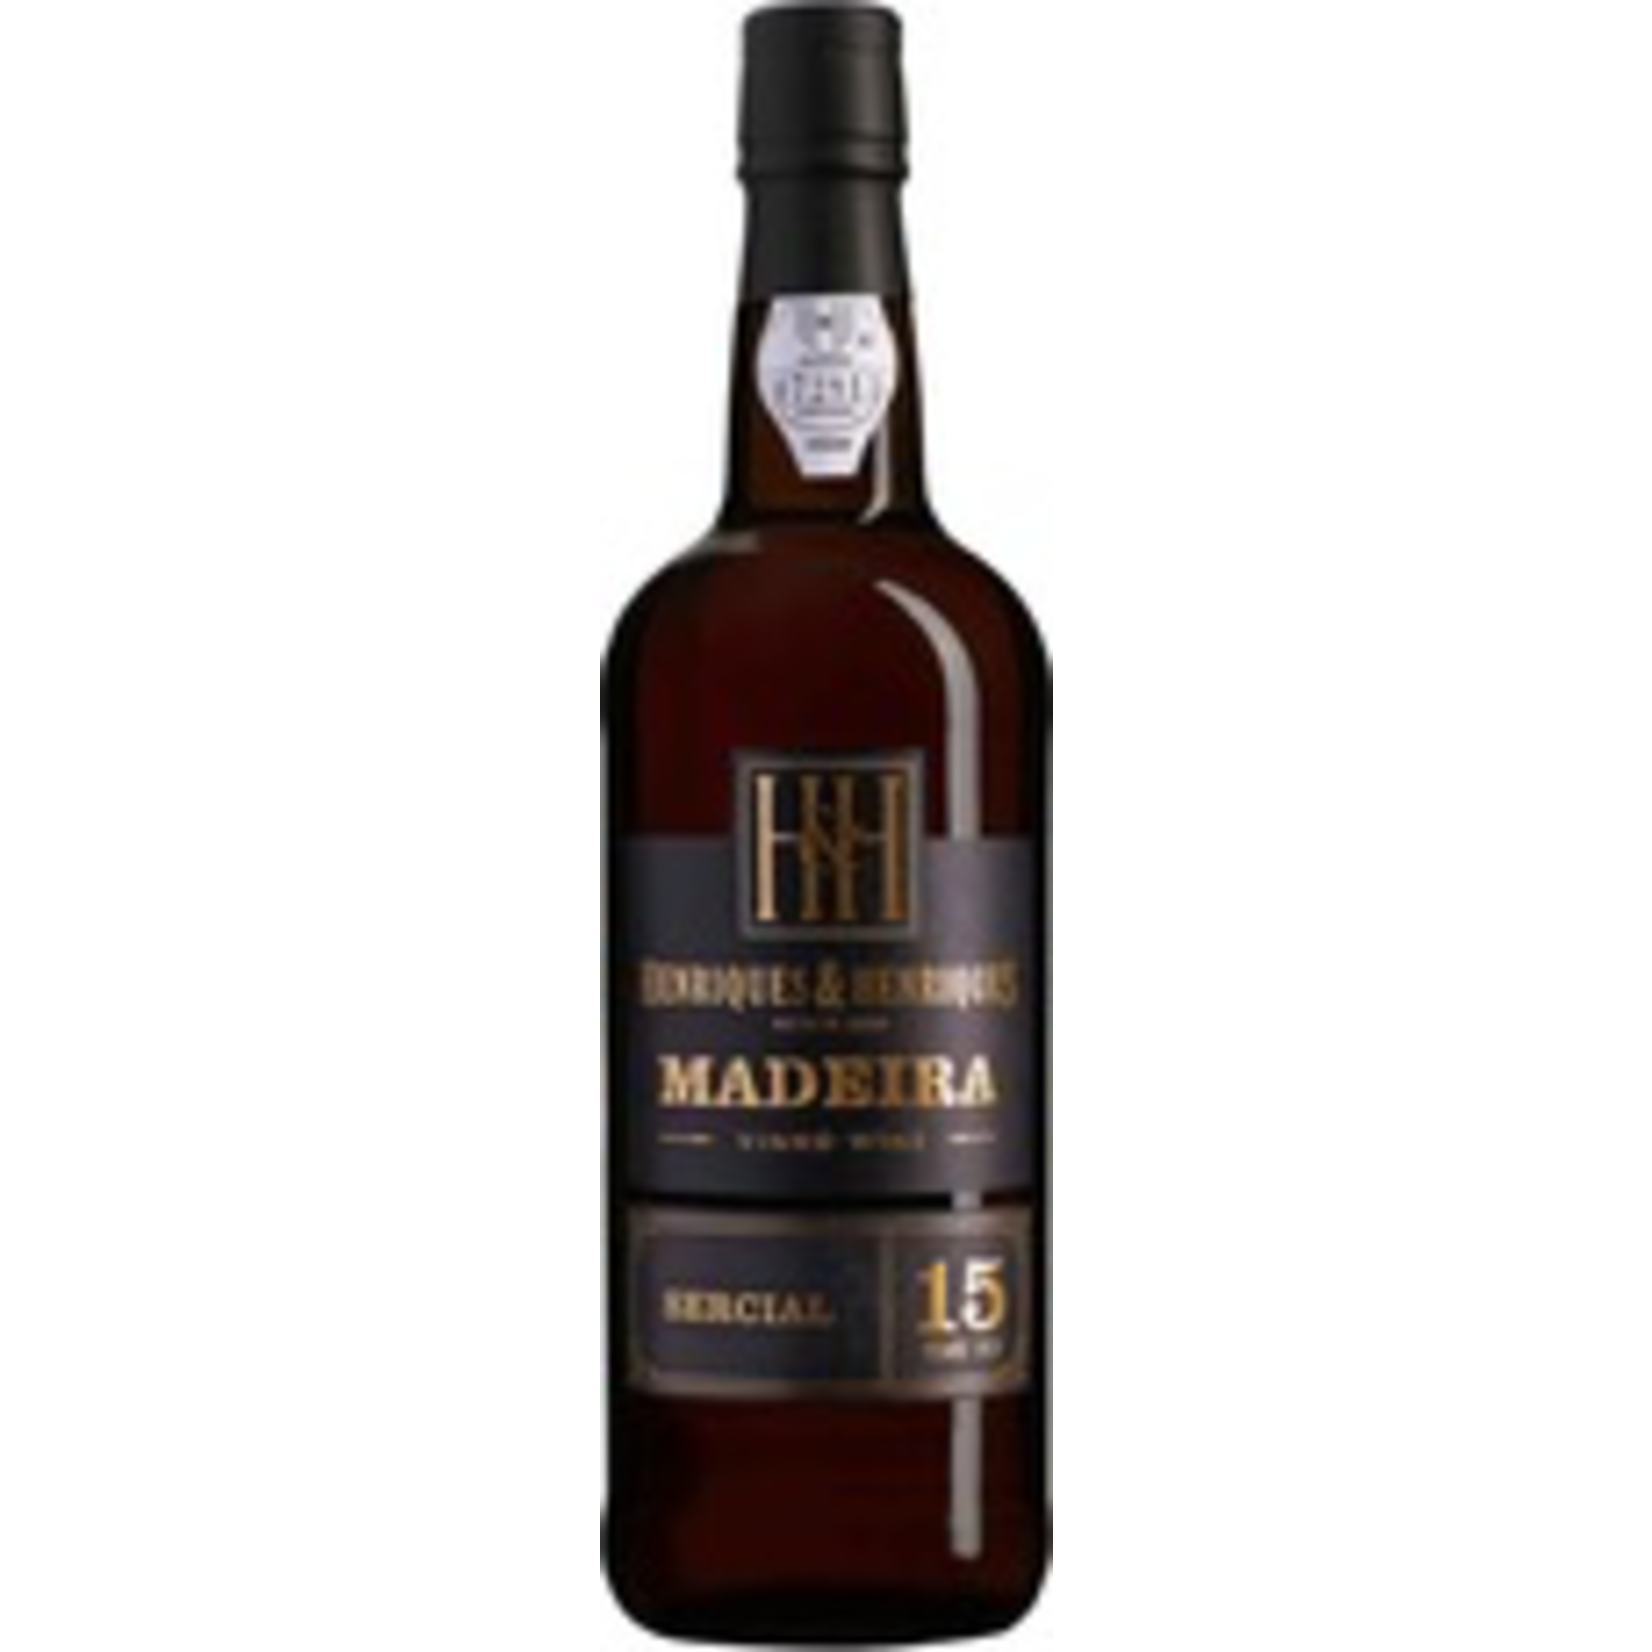 Wine Henriques and Henriques, 15 Years Old Sercial Madeira